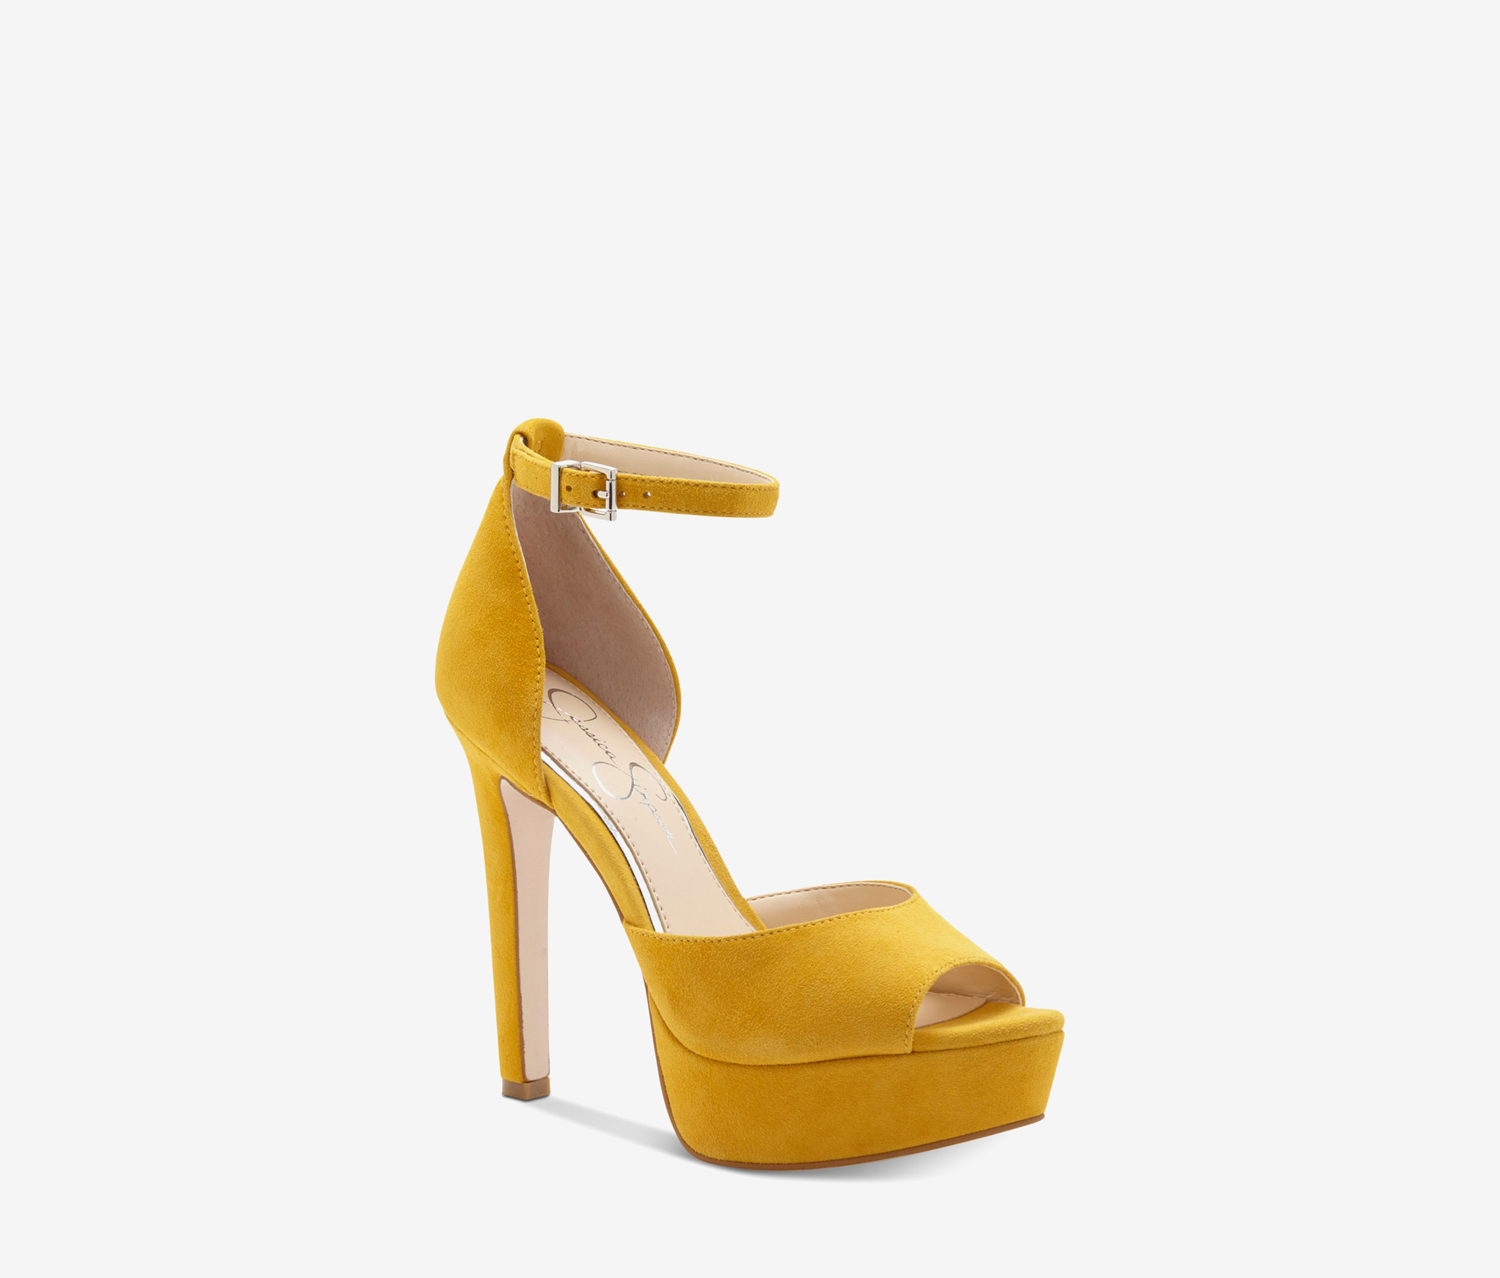 Women's Peep Toe Ankle Strap Sandals, Sunflower